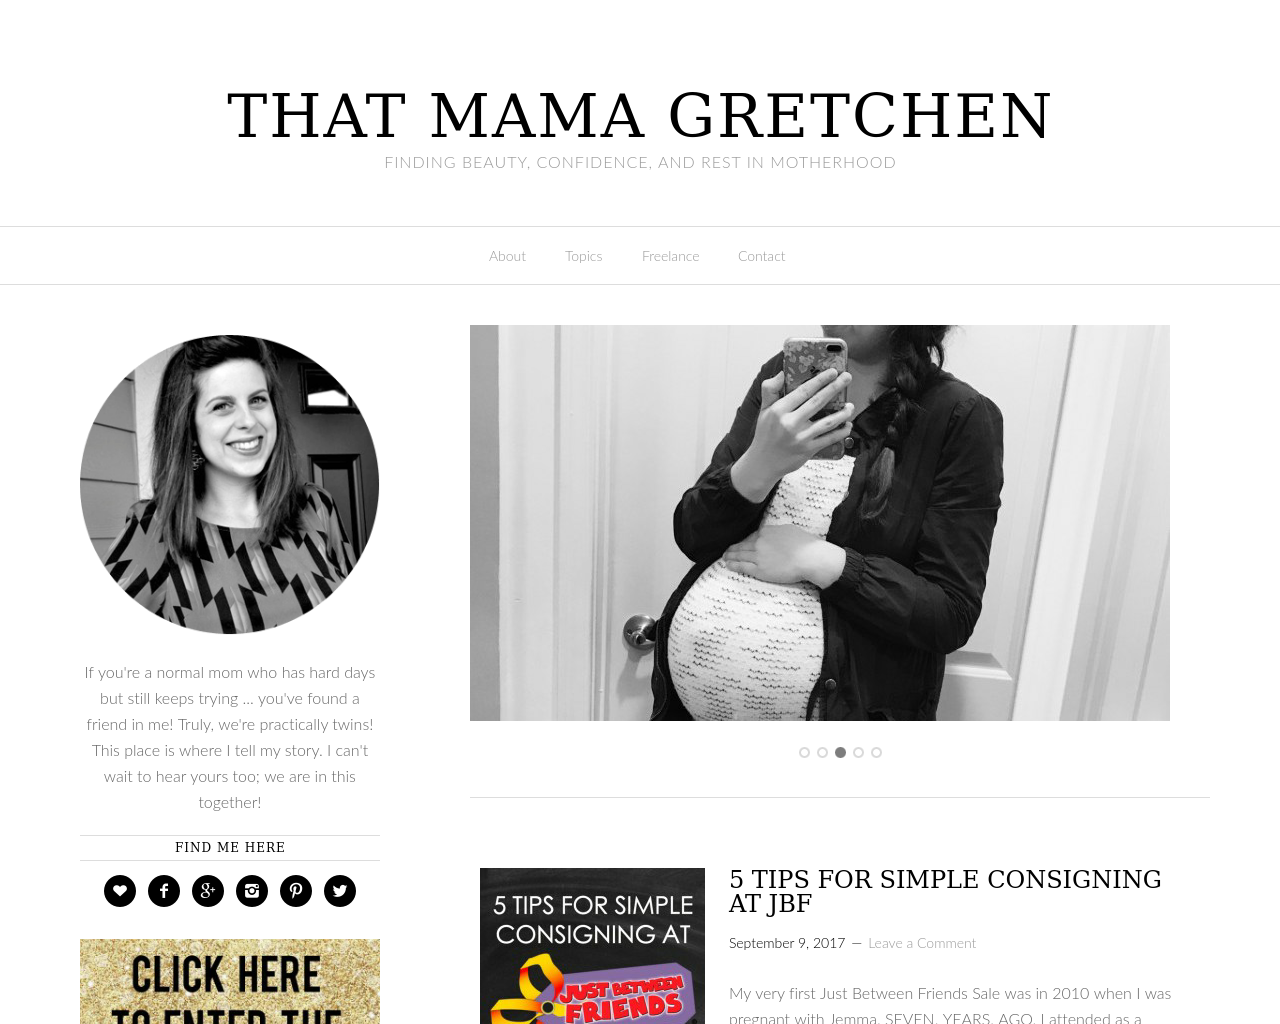 That-Mama-Gretchen-Advertising-Reviews-Pricing